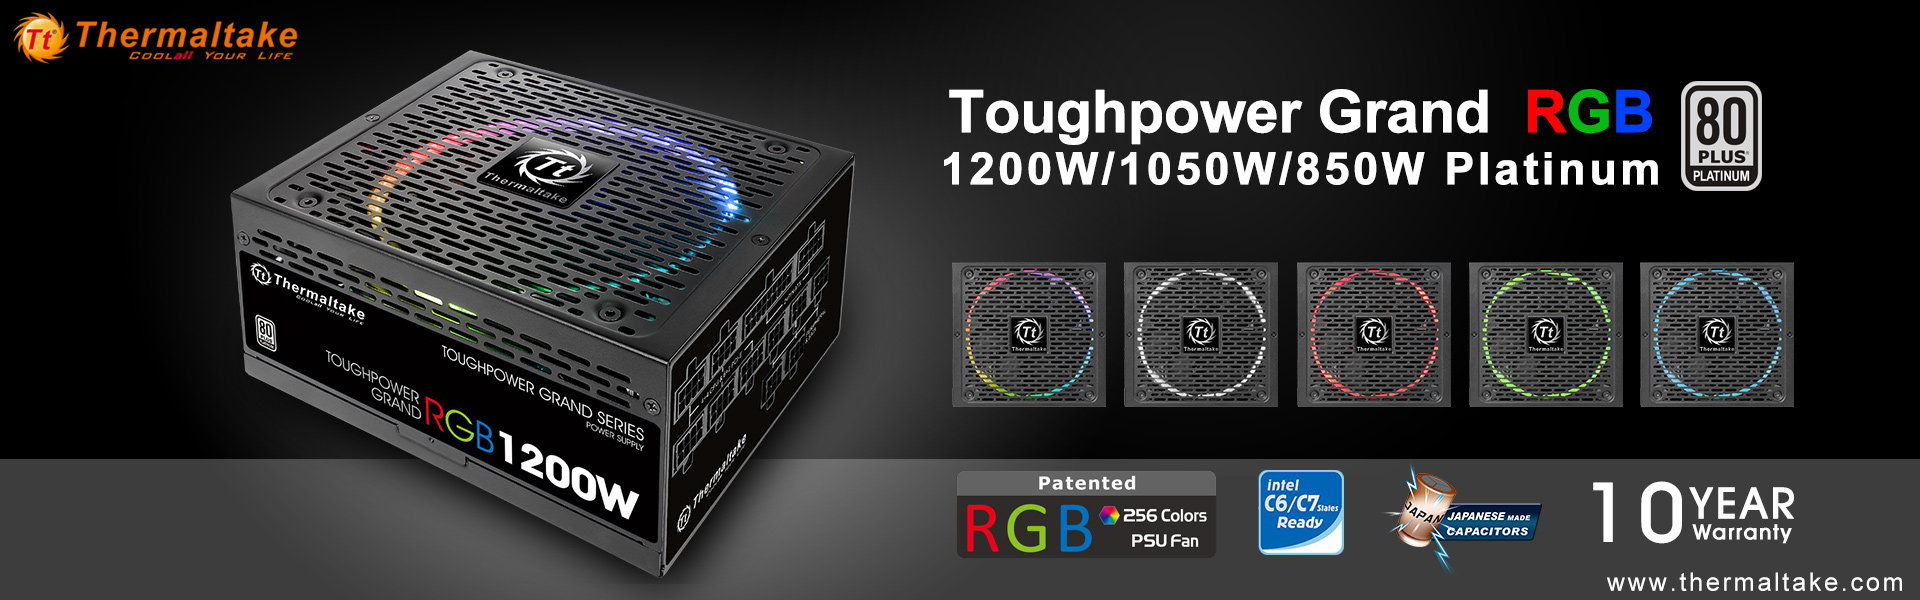 Thermaltake Add Platinum-Rated 850W+ Models To Toughpower Grand RGB ...